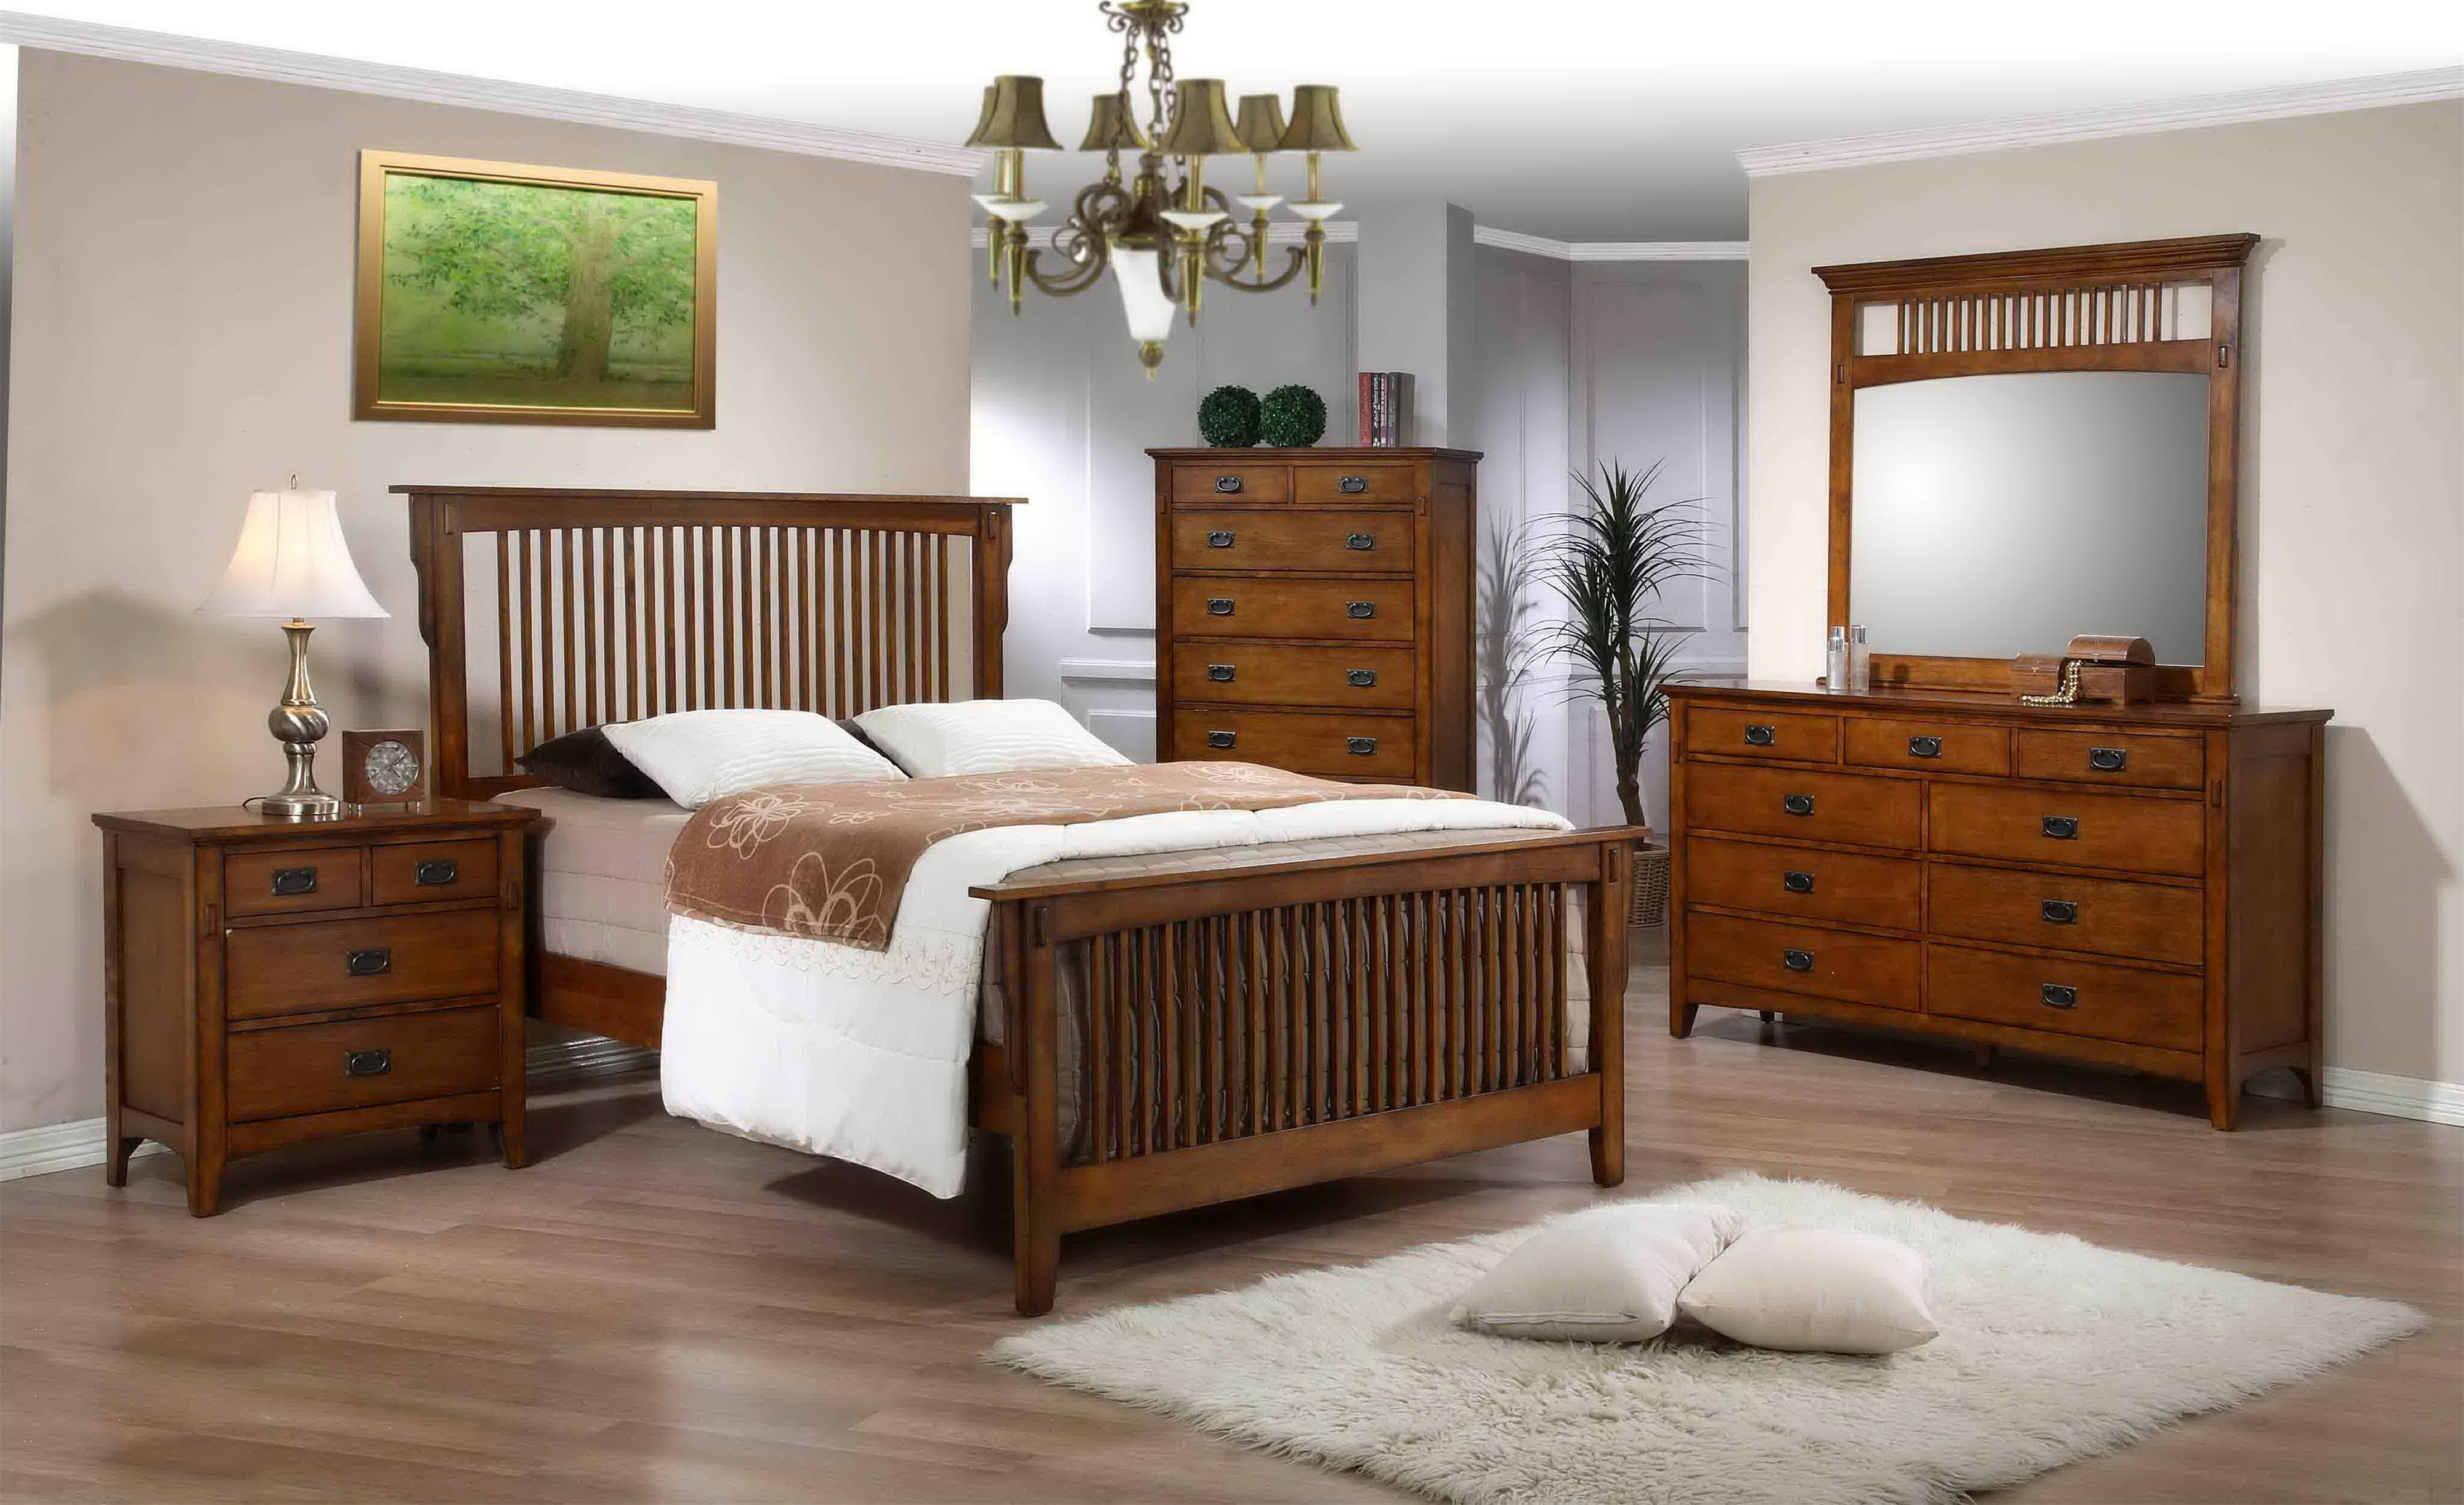 Elements International Trudy Mission Style Double Dresser And Mirror With Slat Detail